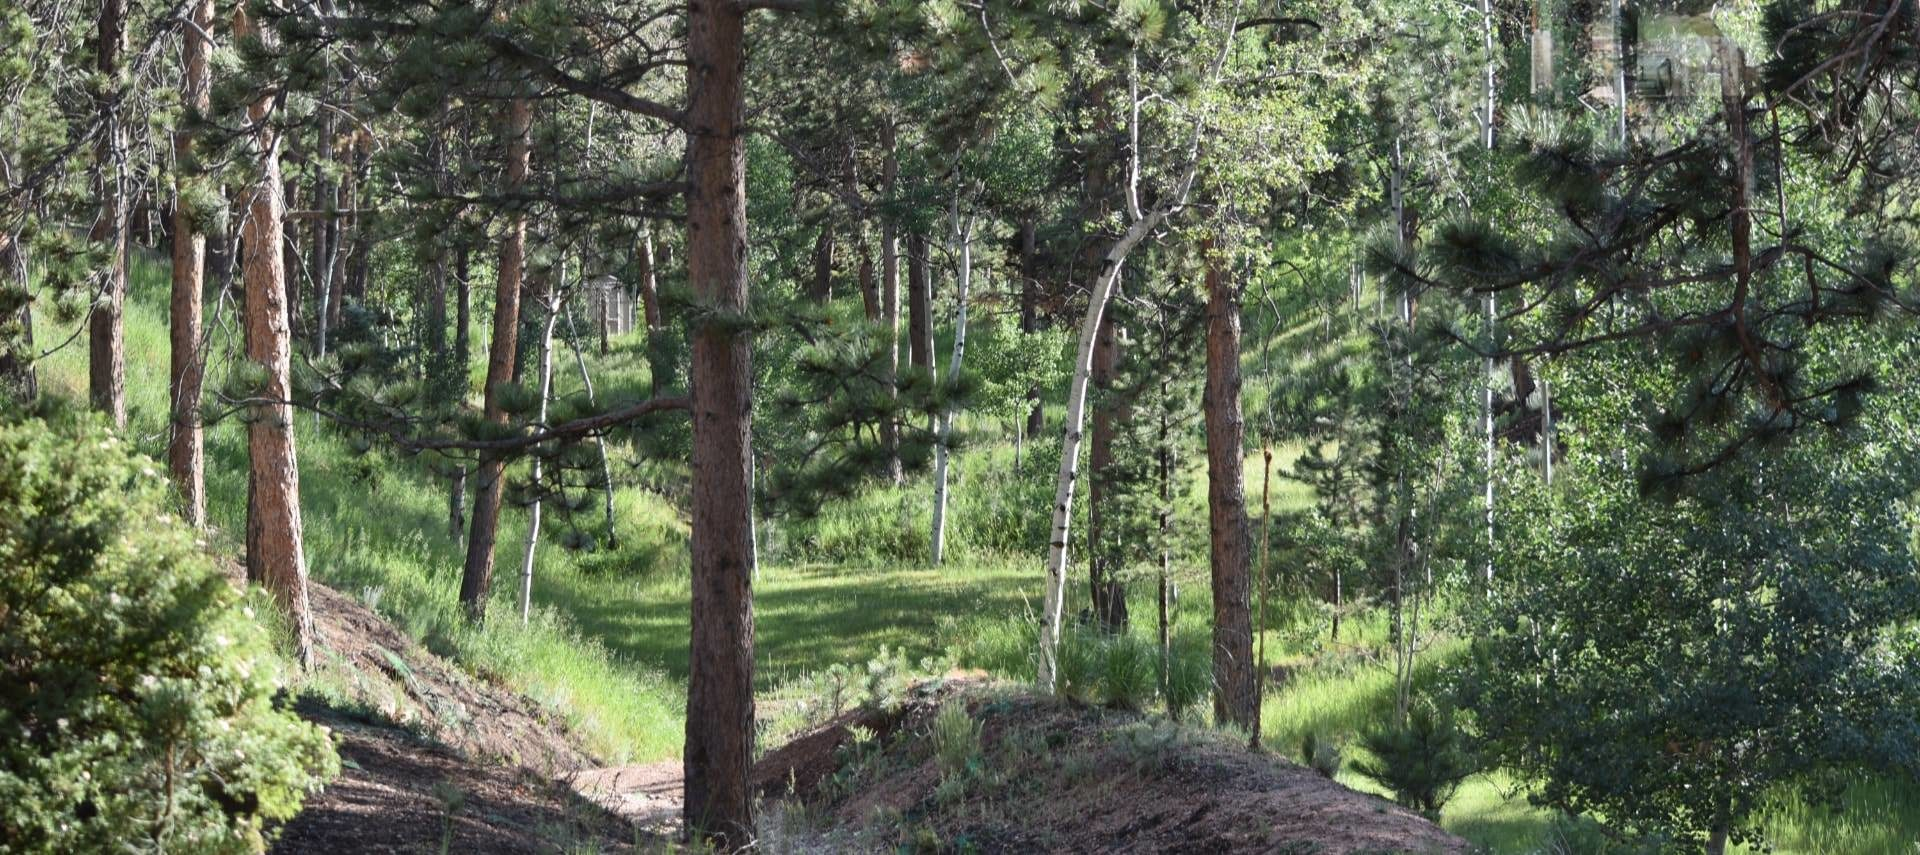 Many pine trees and aspen trees with green grass growing in between